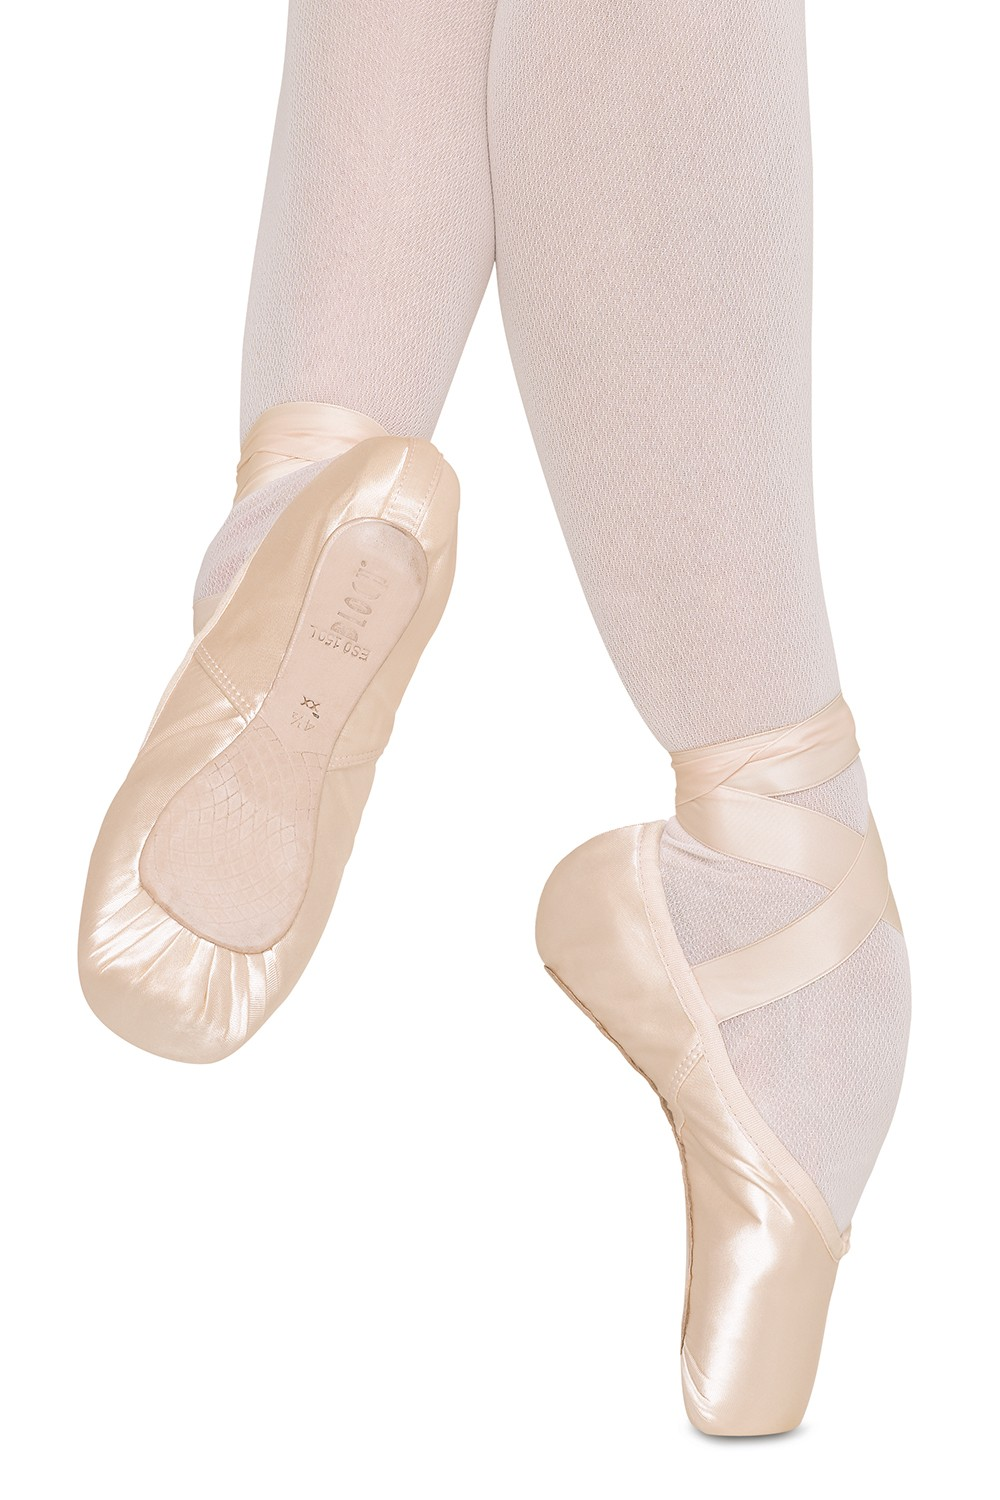 Balance Pointe Shoes